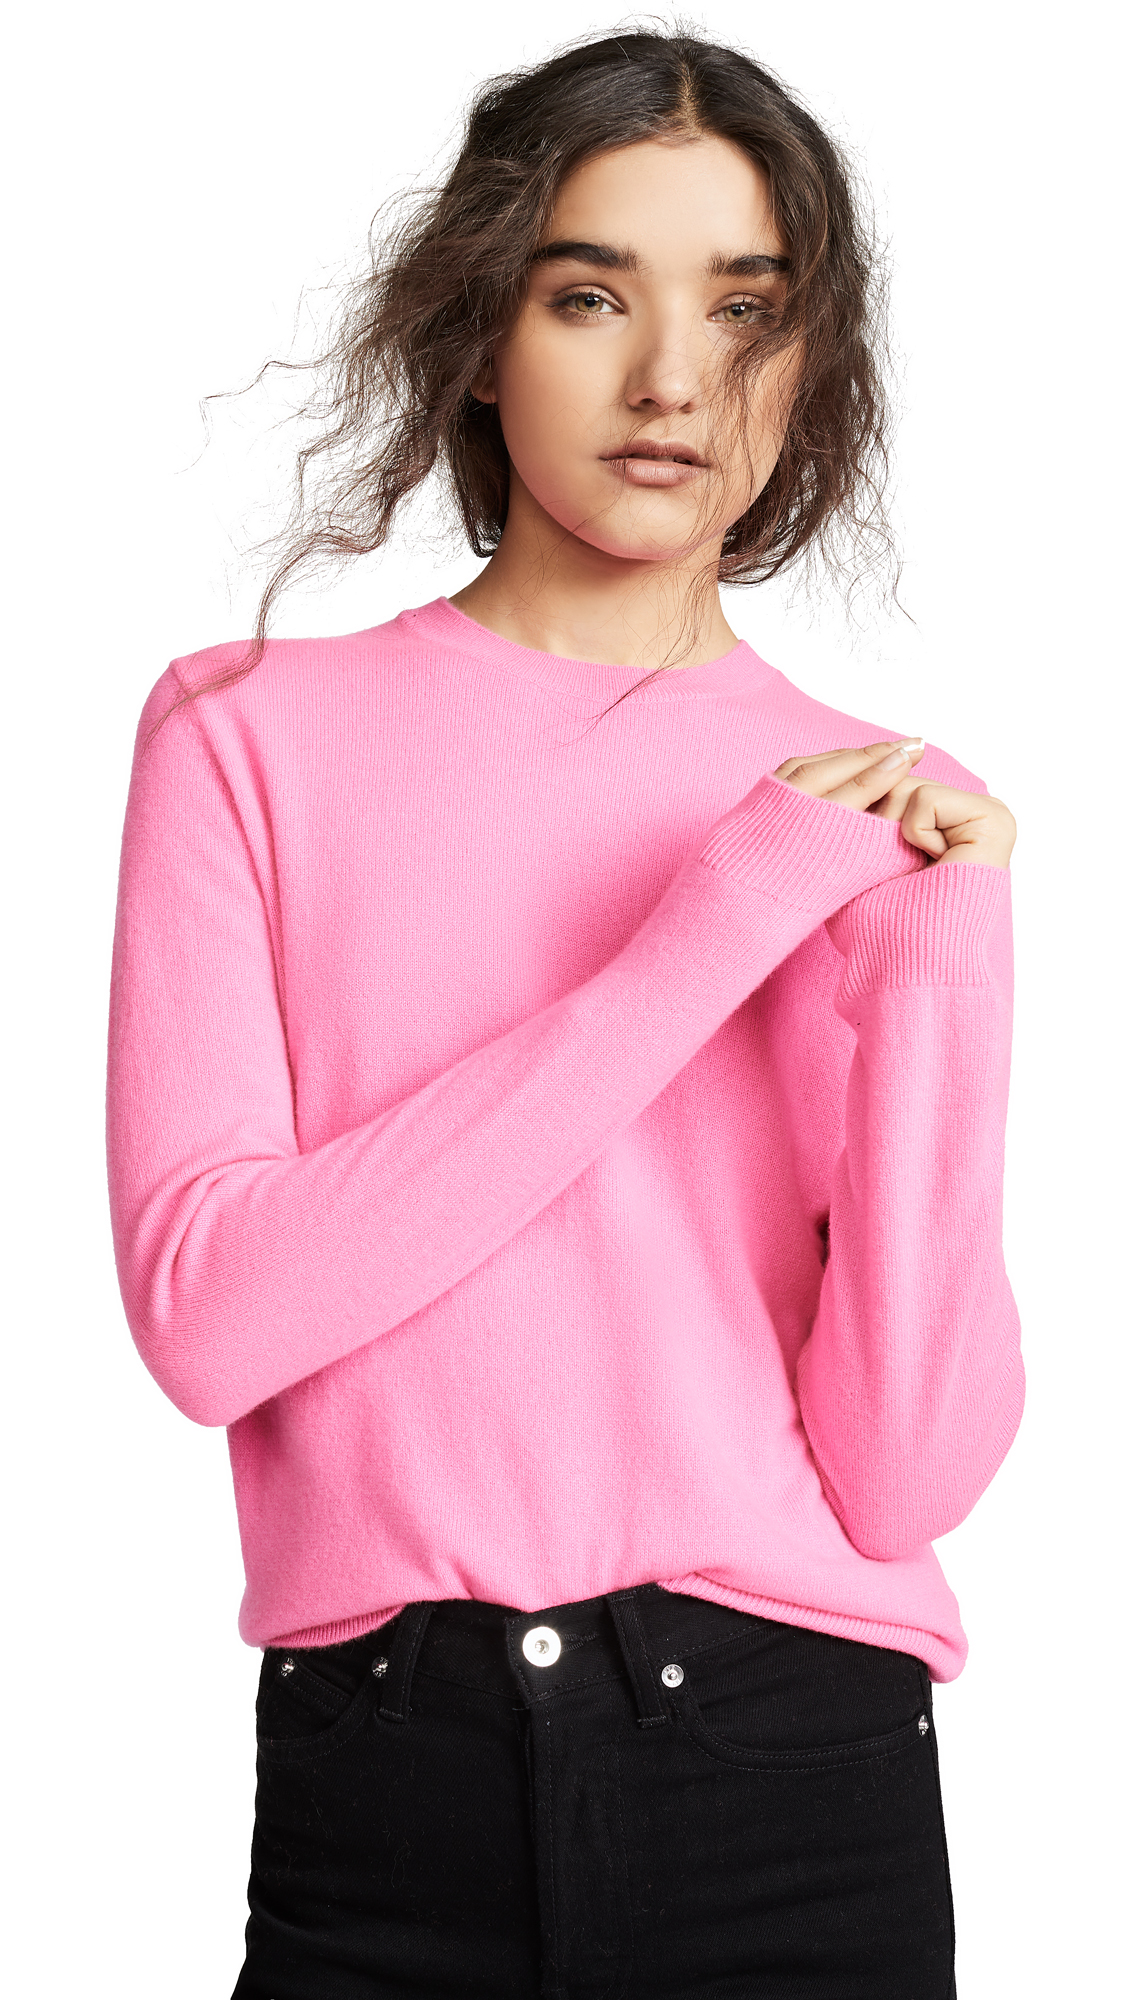 BOP BASICS Cashmere Boxy Sweater in Hot Pink